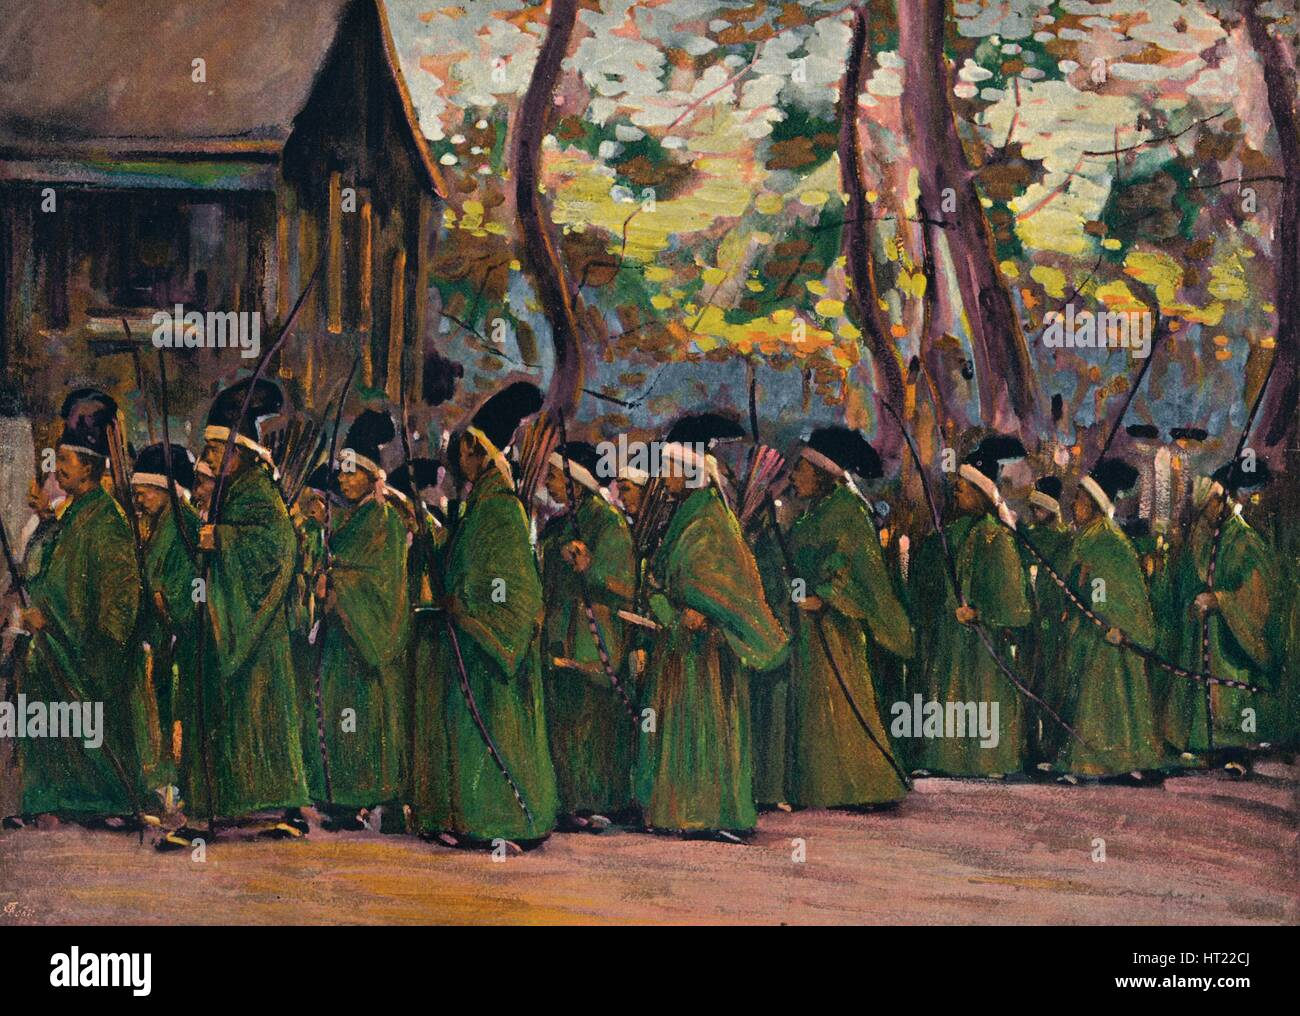 'Procession of Archers at Kioto', c1897. Artist: Mortimer L Menpes. - Stock Image